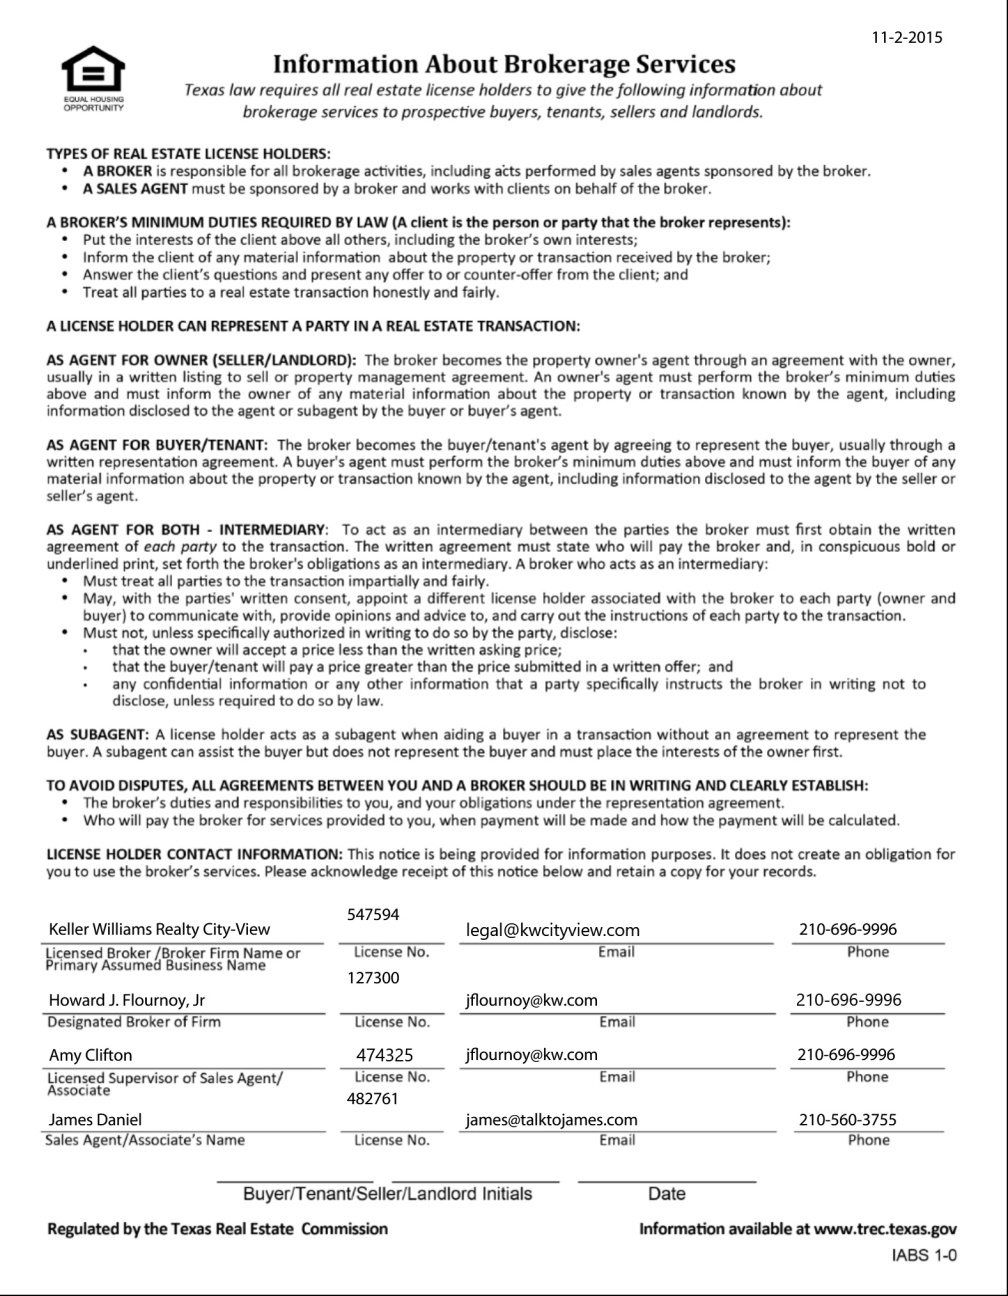 Completed Texas Real Estate Commission (TREC) Information About Brokerage Services Form-2